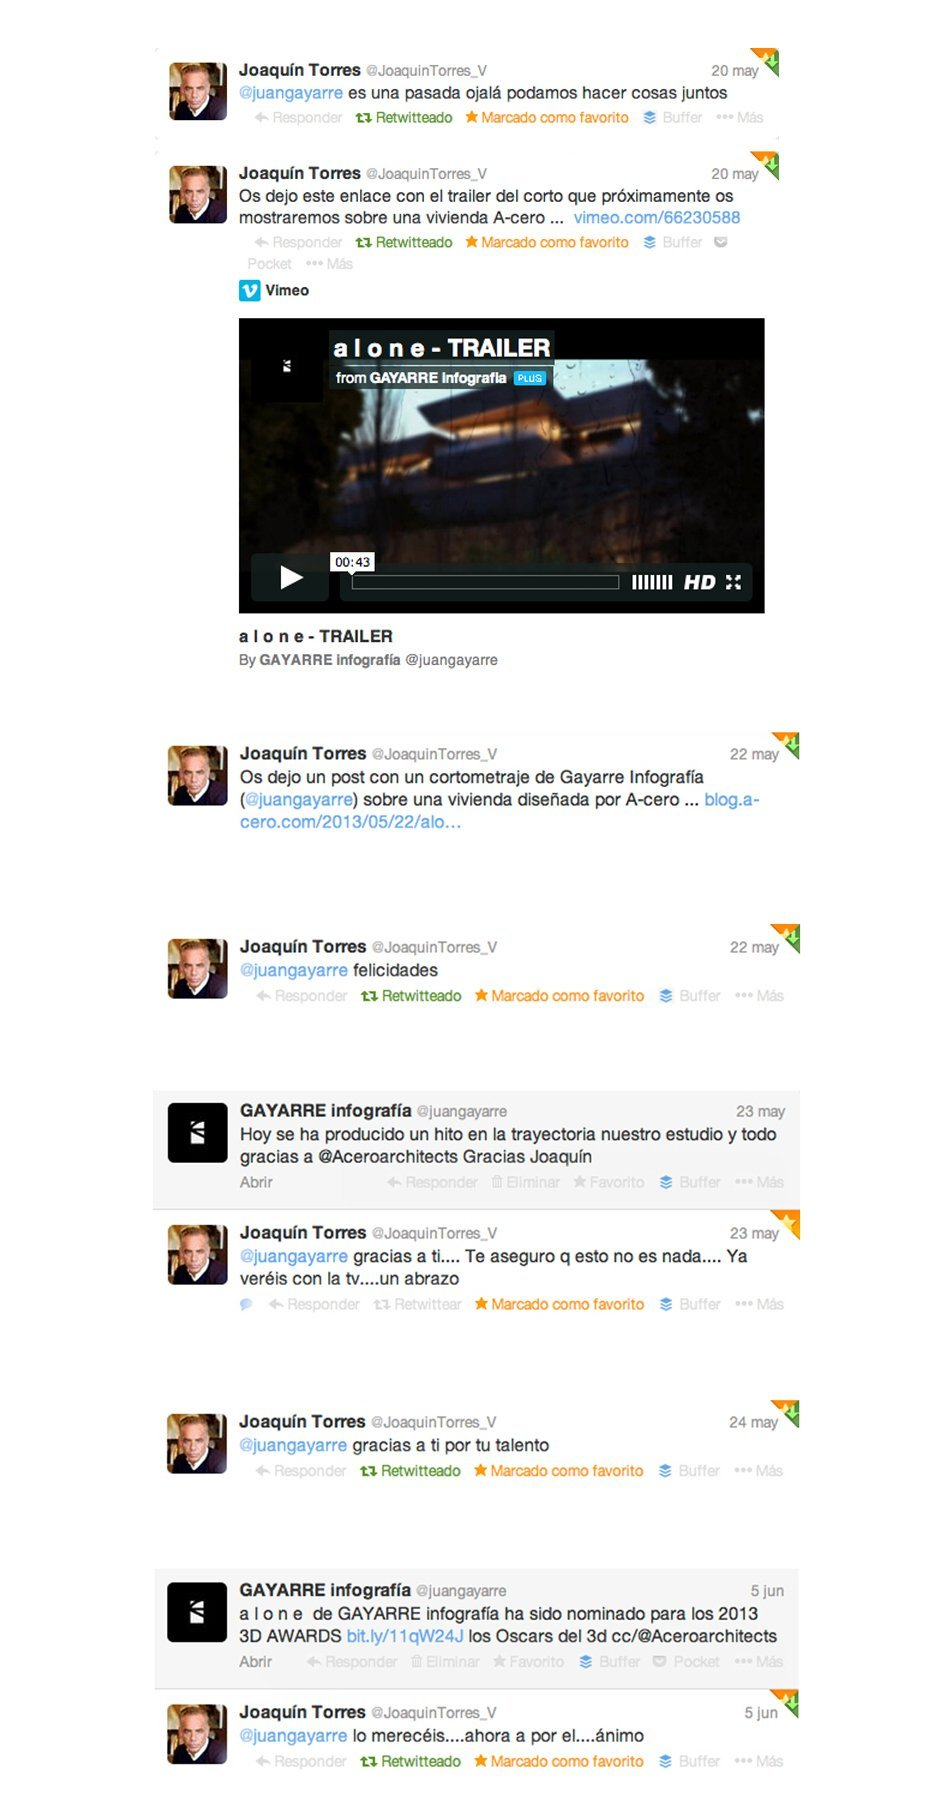 Tweets from Joaquín Torres talking about our trailer alone nominee to the CGArchitects Awards 2013